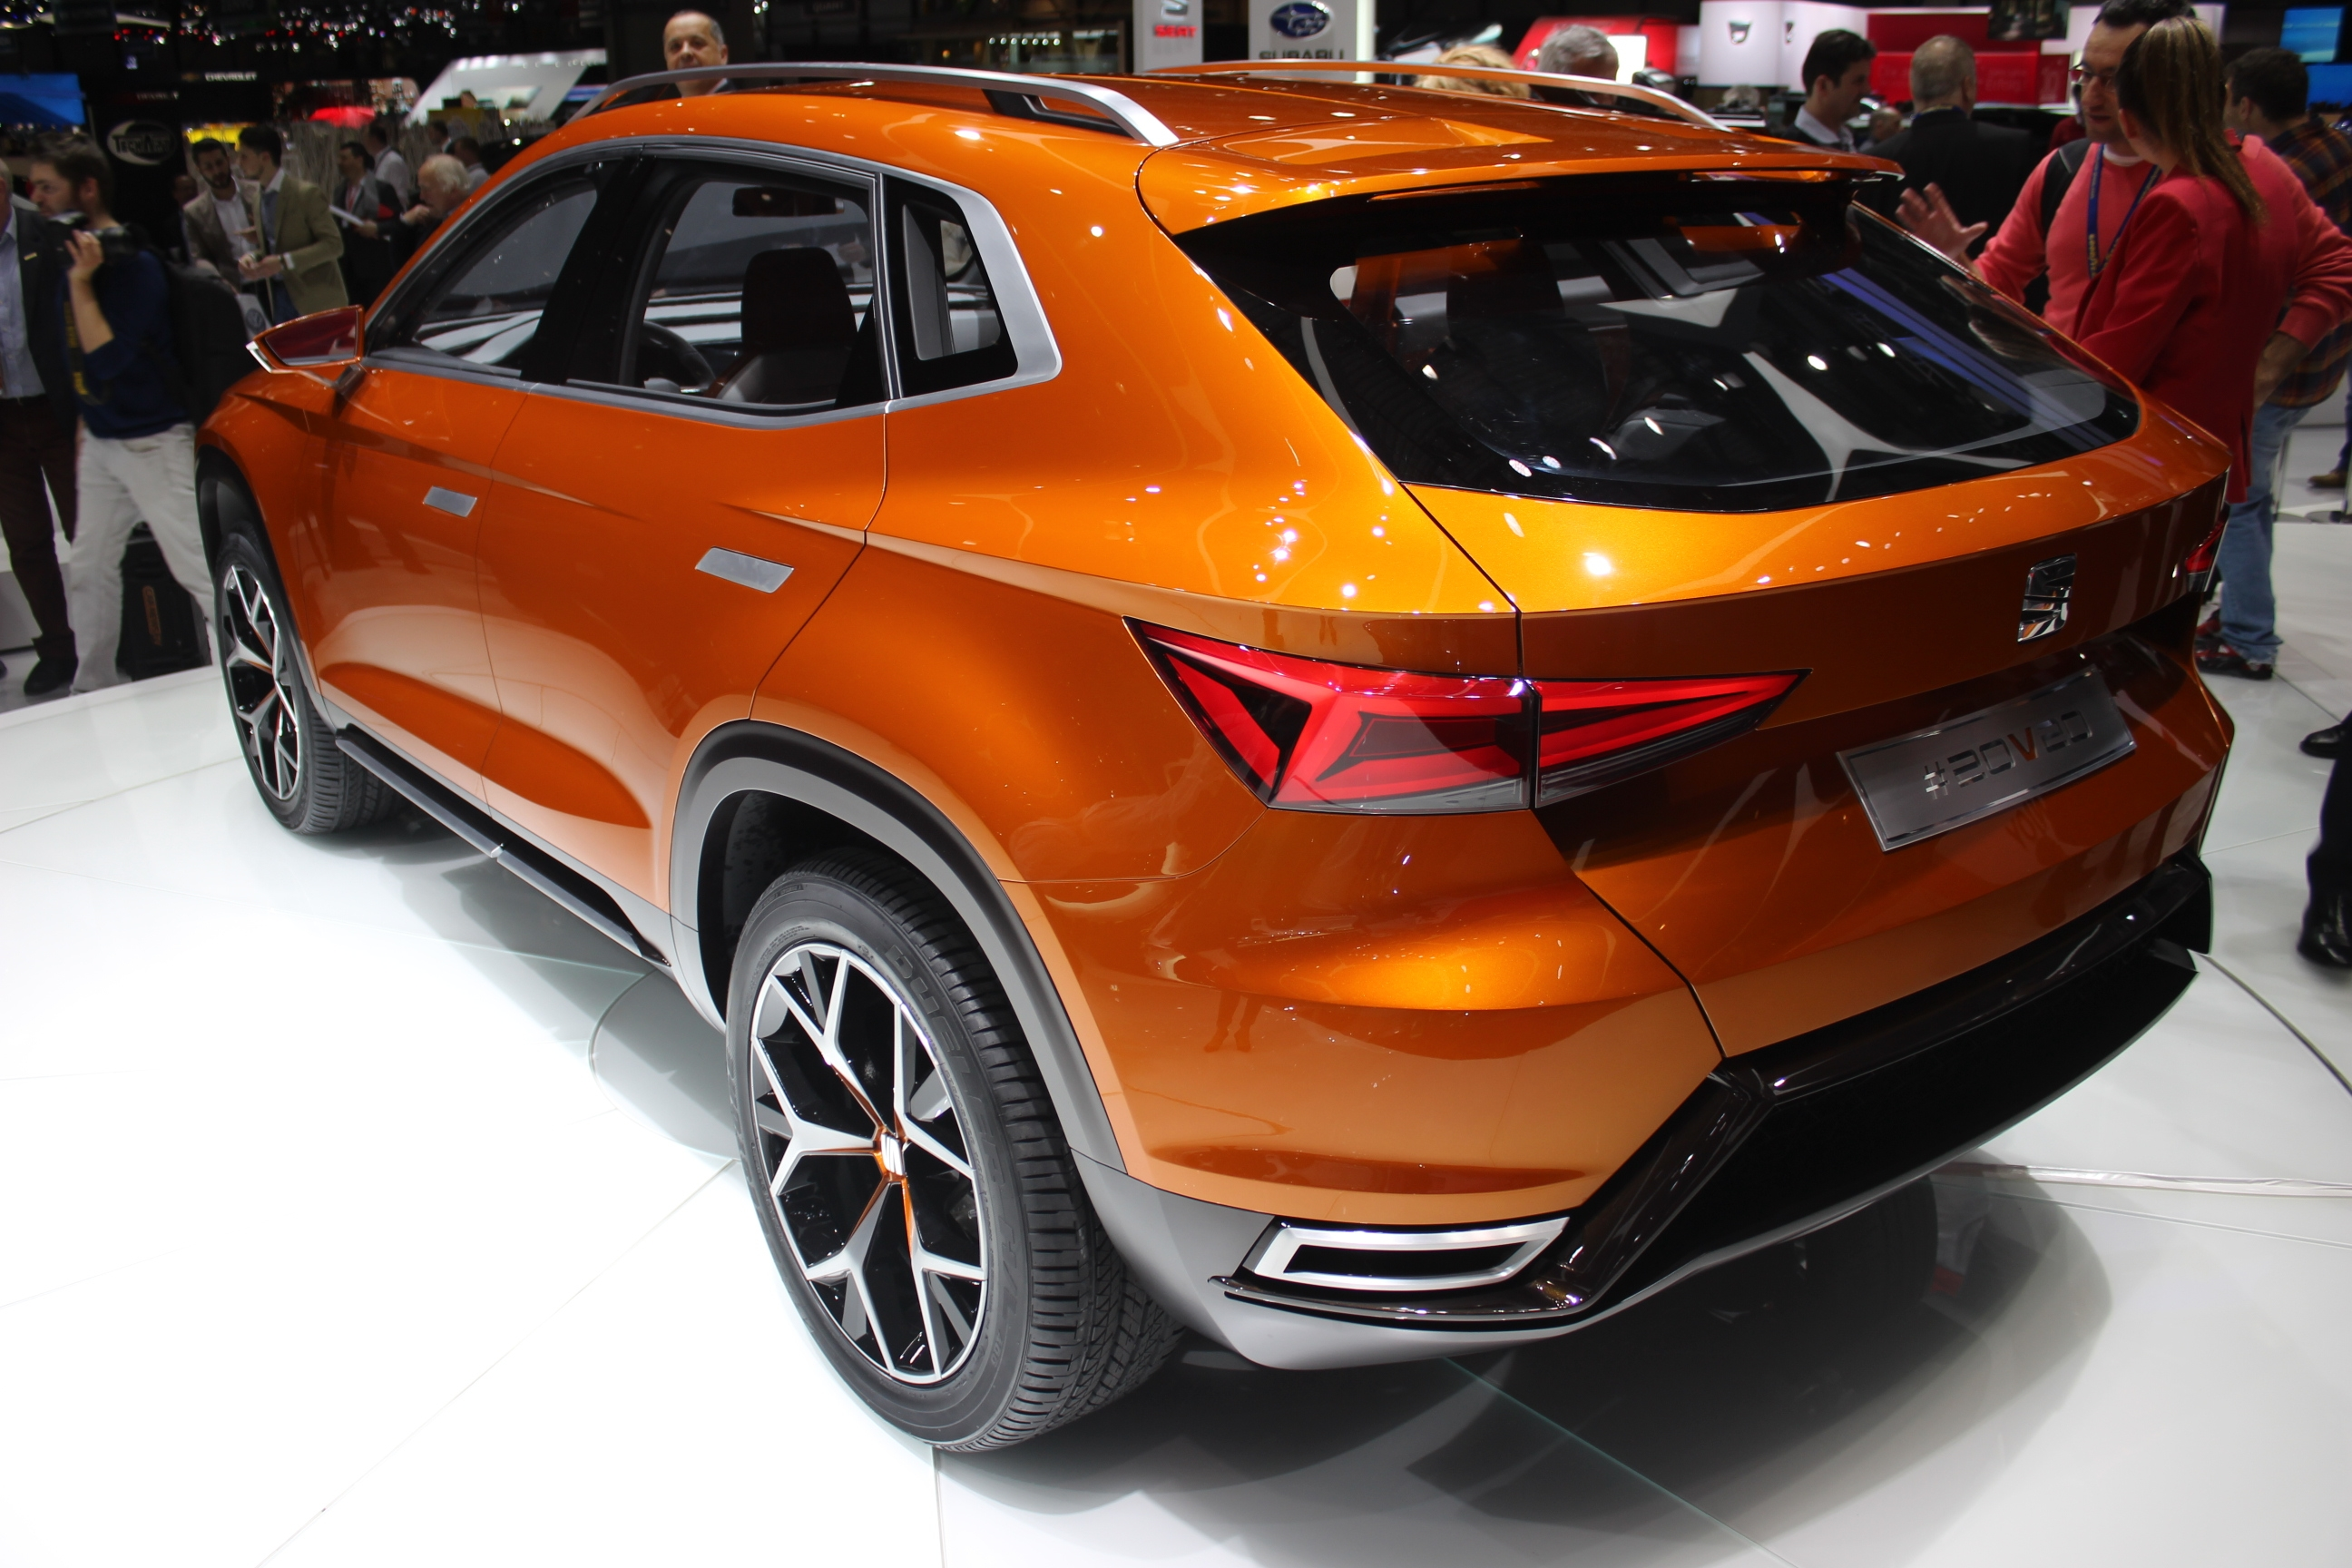 Seat 20v20 son premier suv en direct du salon de for Geneve 2015 salon